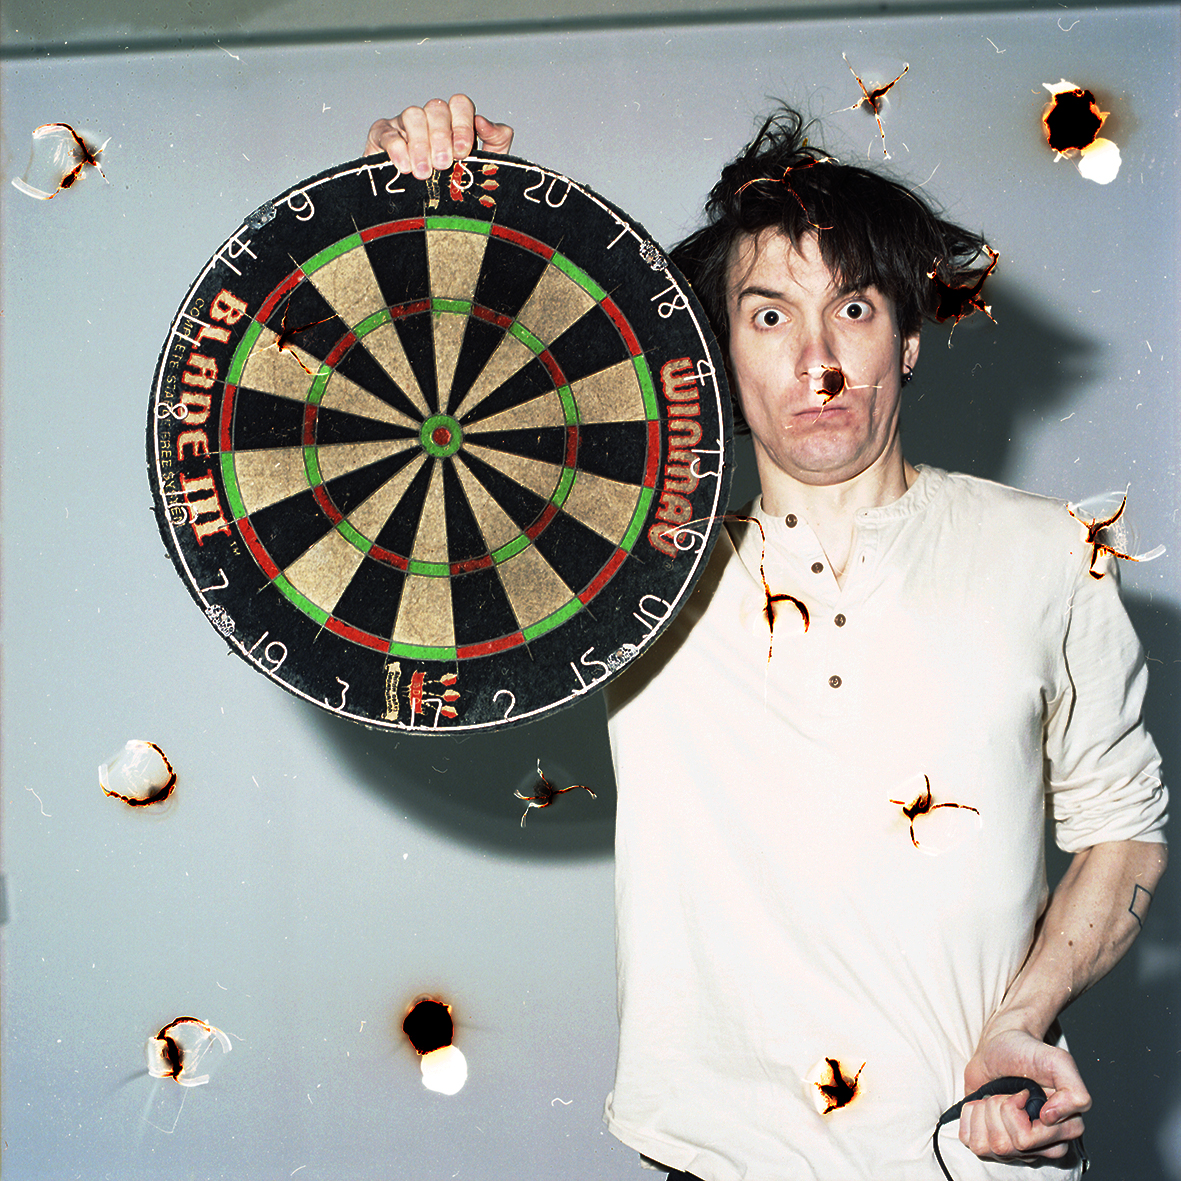 old name: Self Portrait With Dart Board